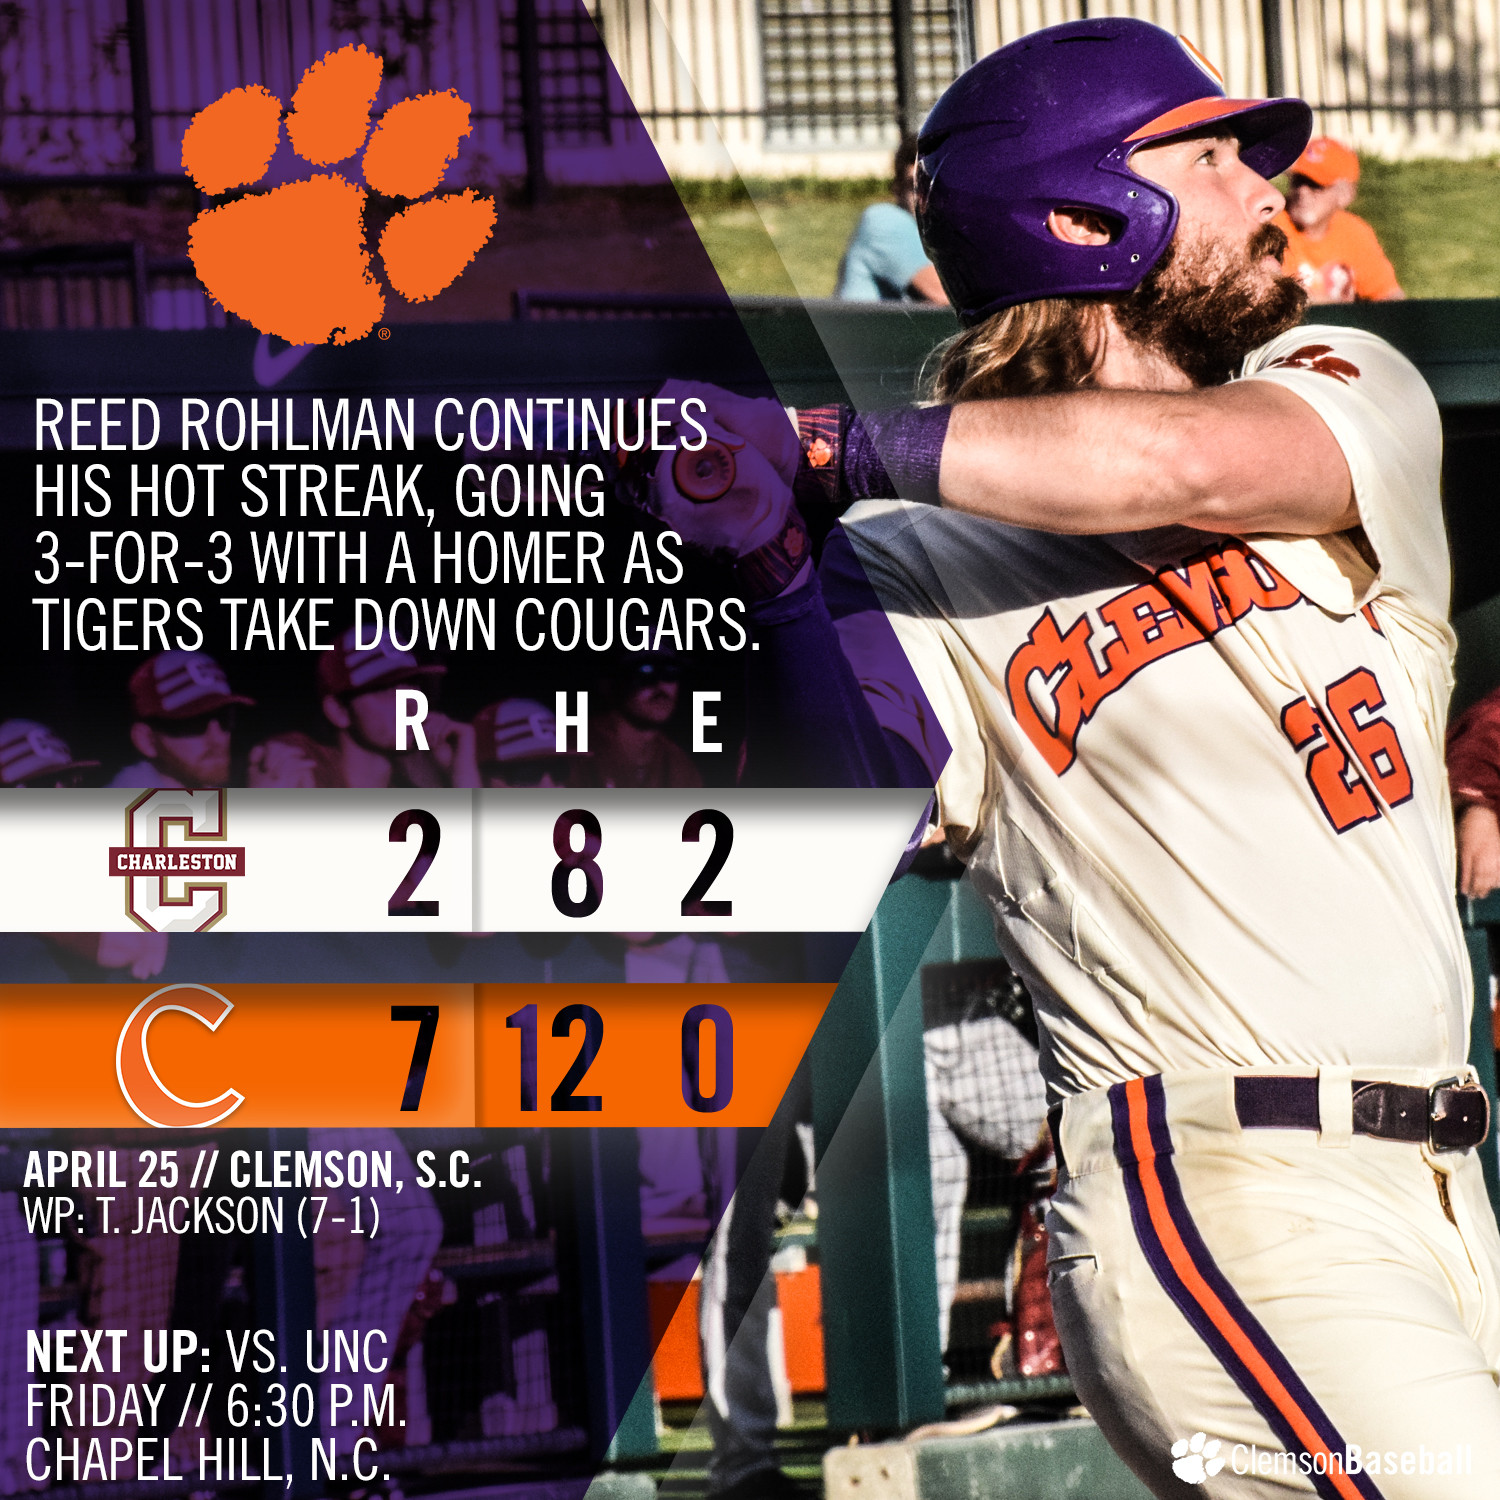 No. 3 Tigers Down Cougars 7-2